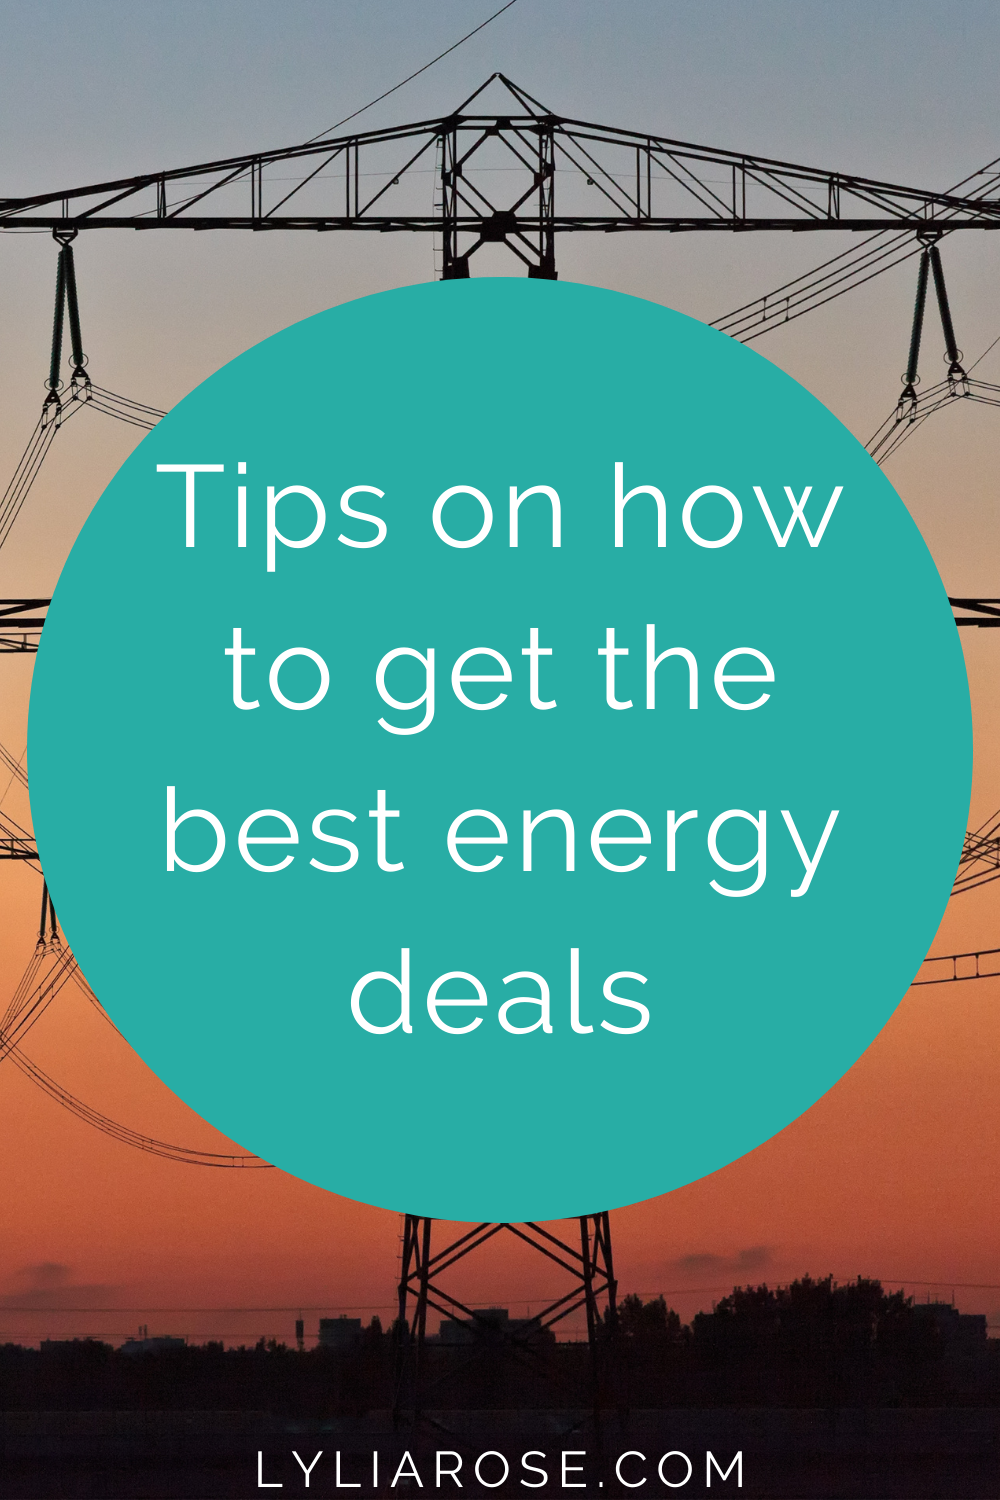 Tips on how to get the best energy deals